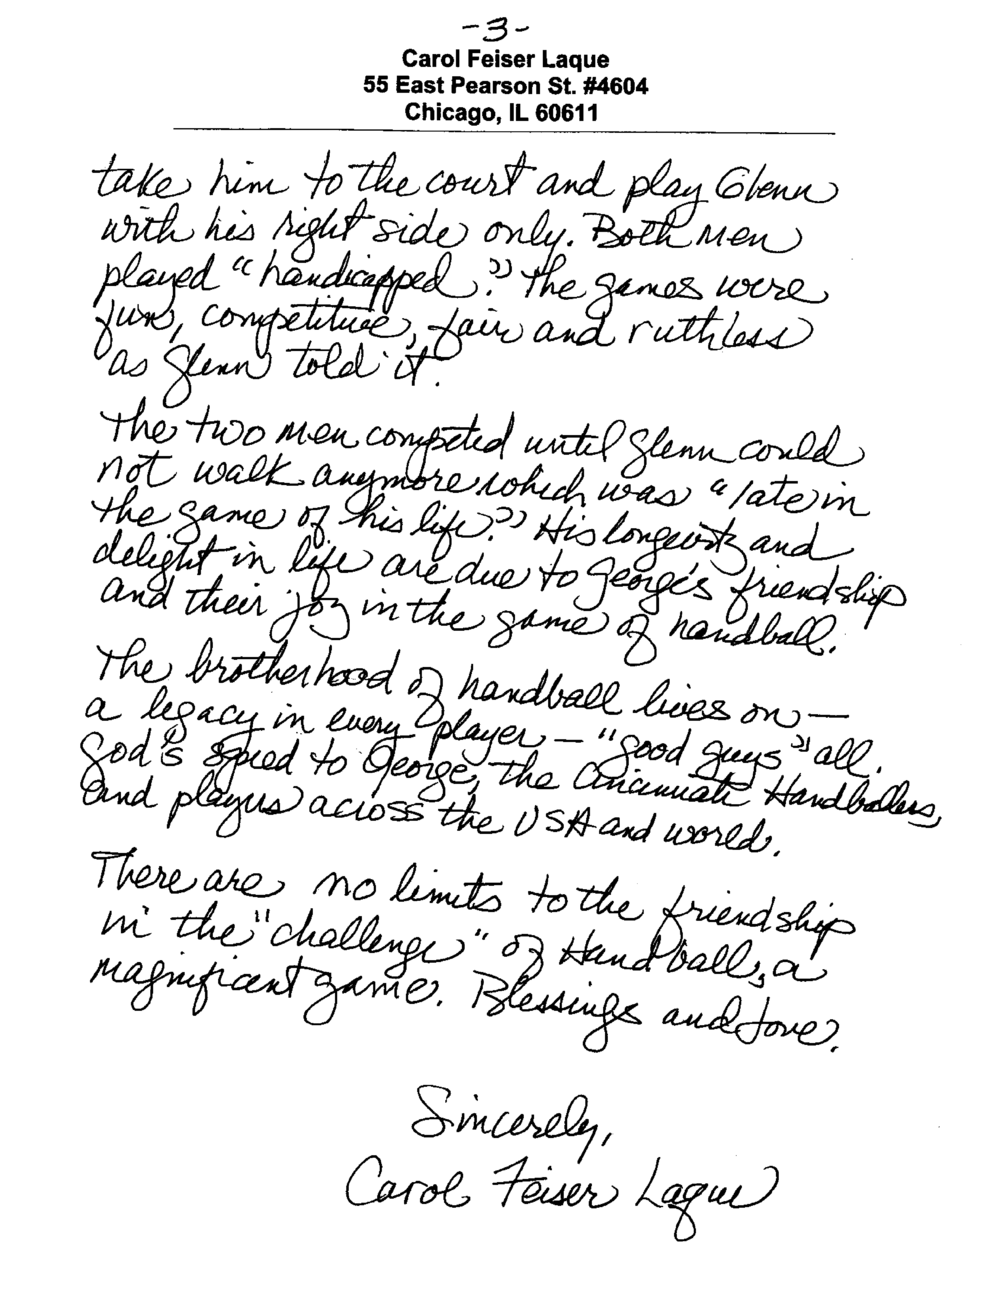 Letter_from_Carol_Feiser_Laque_Page_3_Large.png